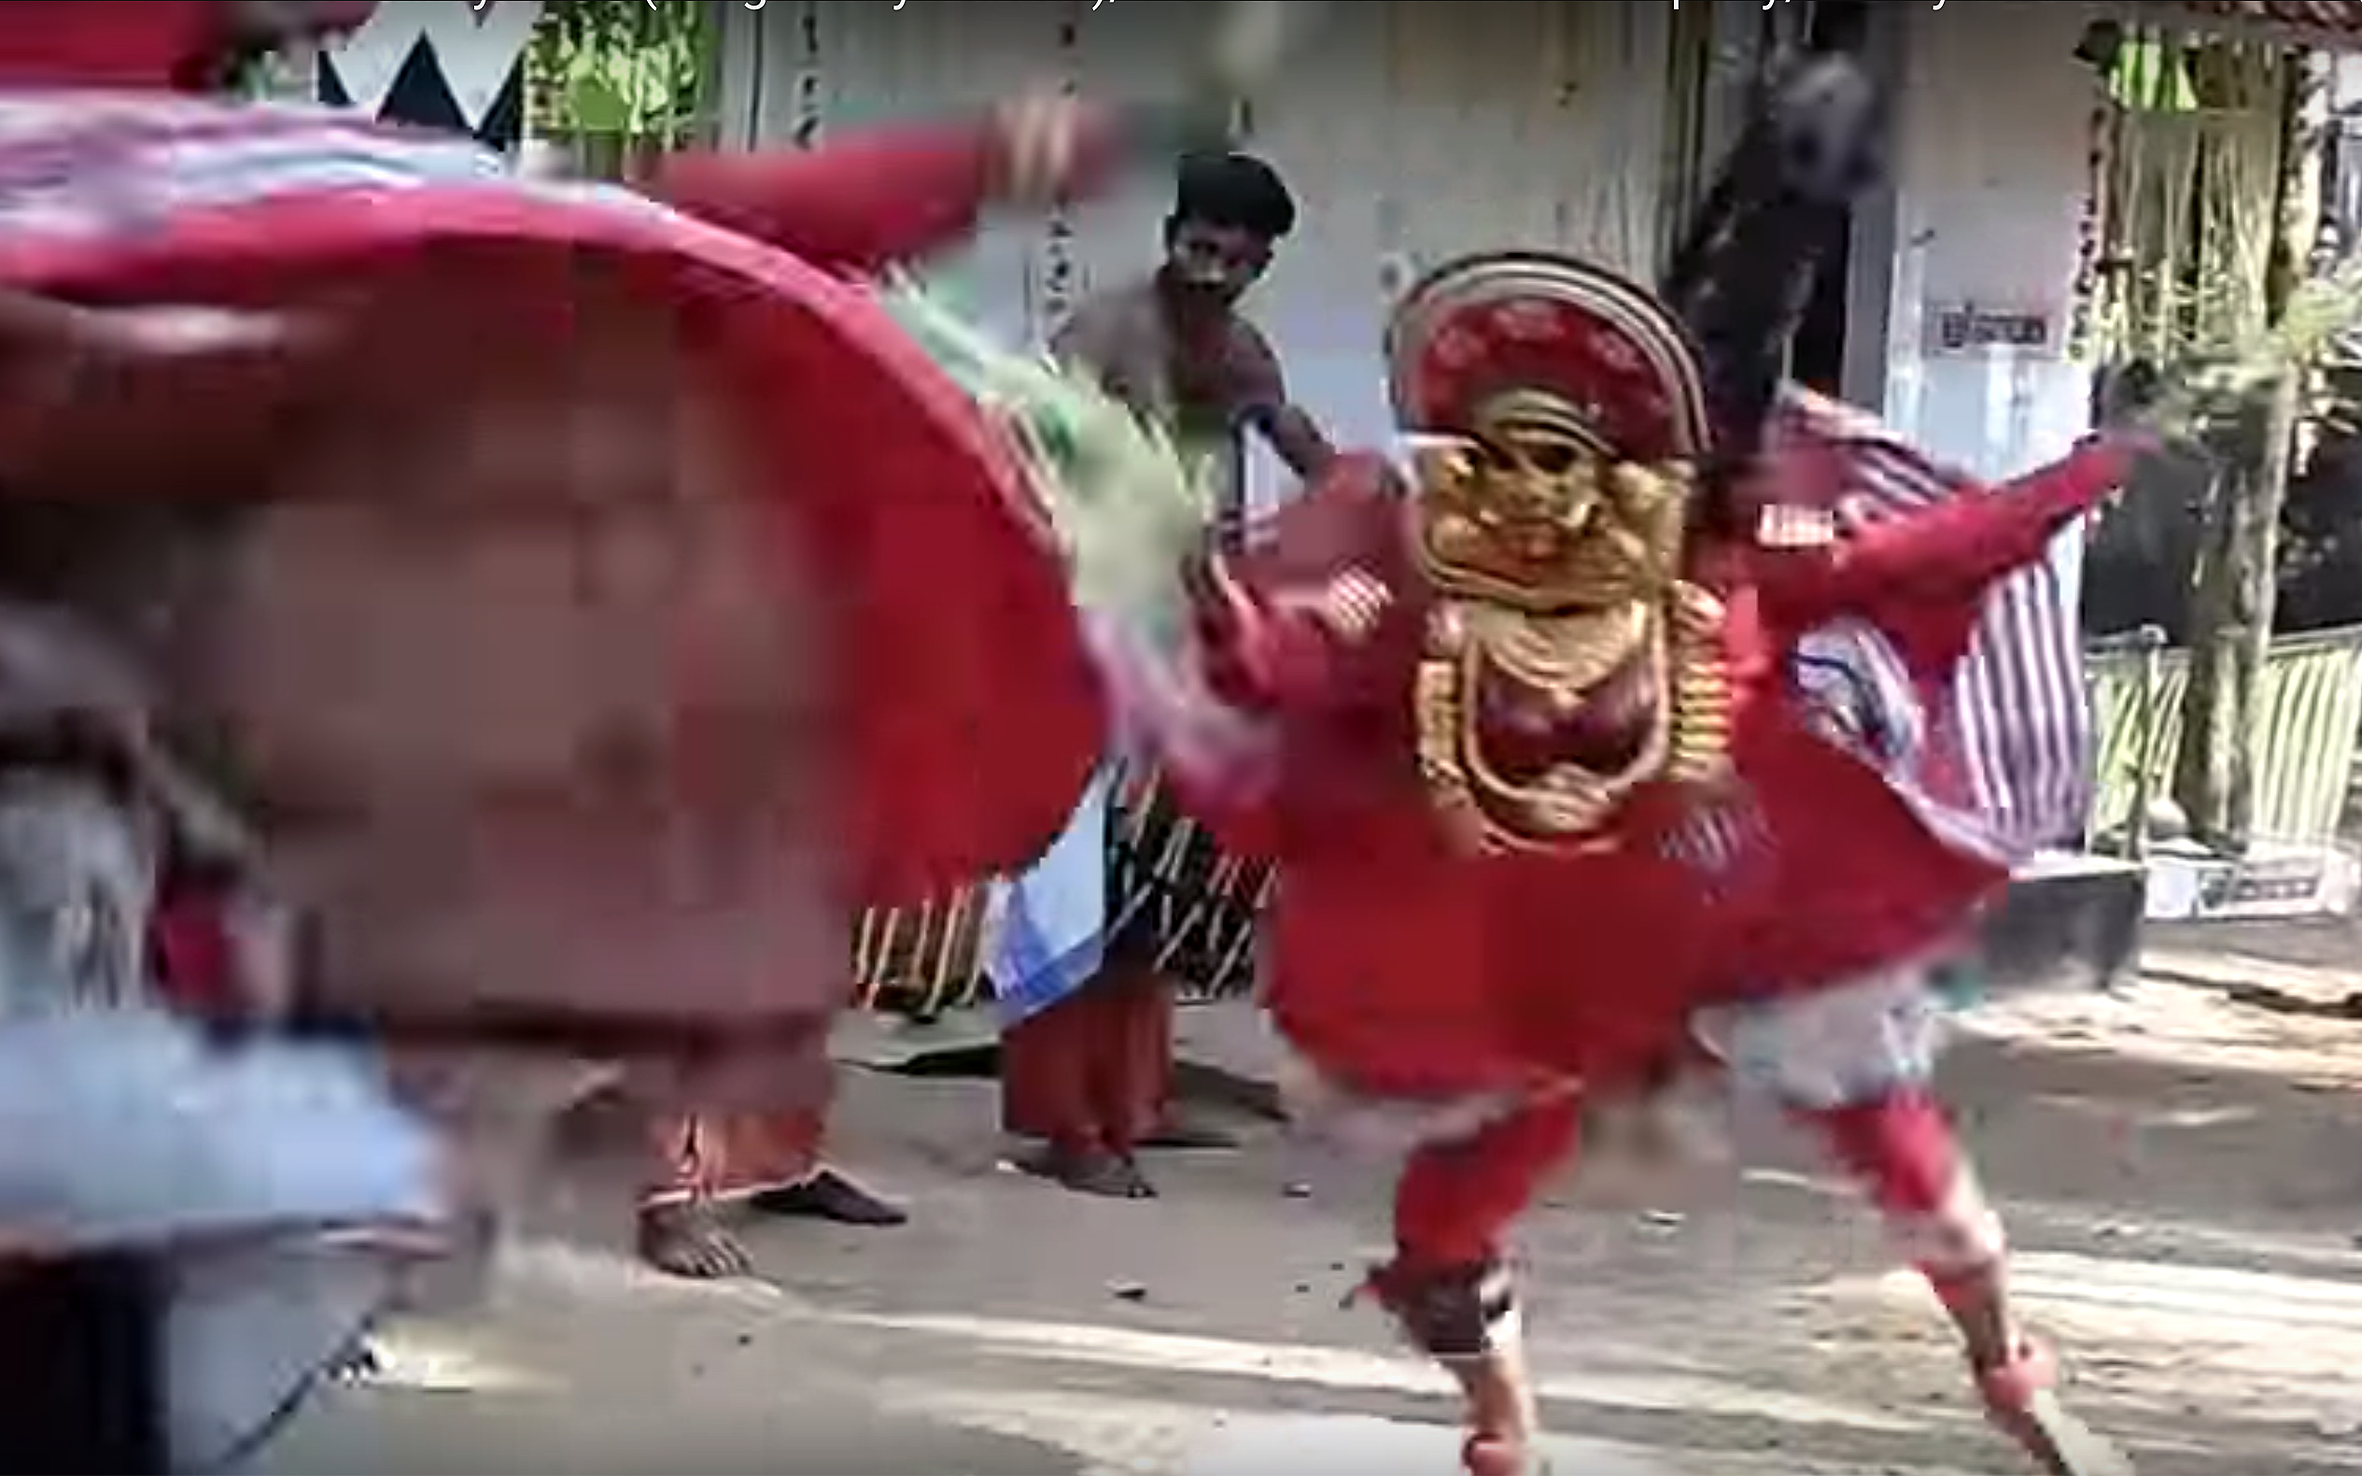 938.VELLATTU / India - VELLATTU is a dance originating from south of India, performed as a ritual prior to Theyyam.